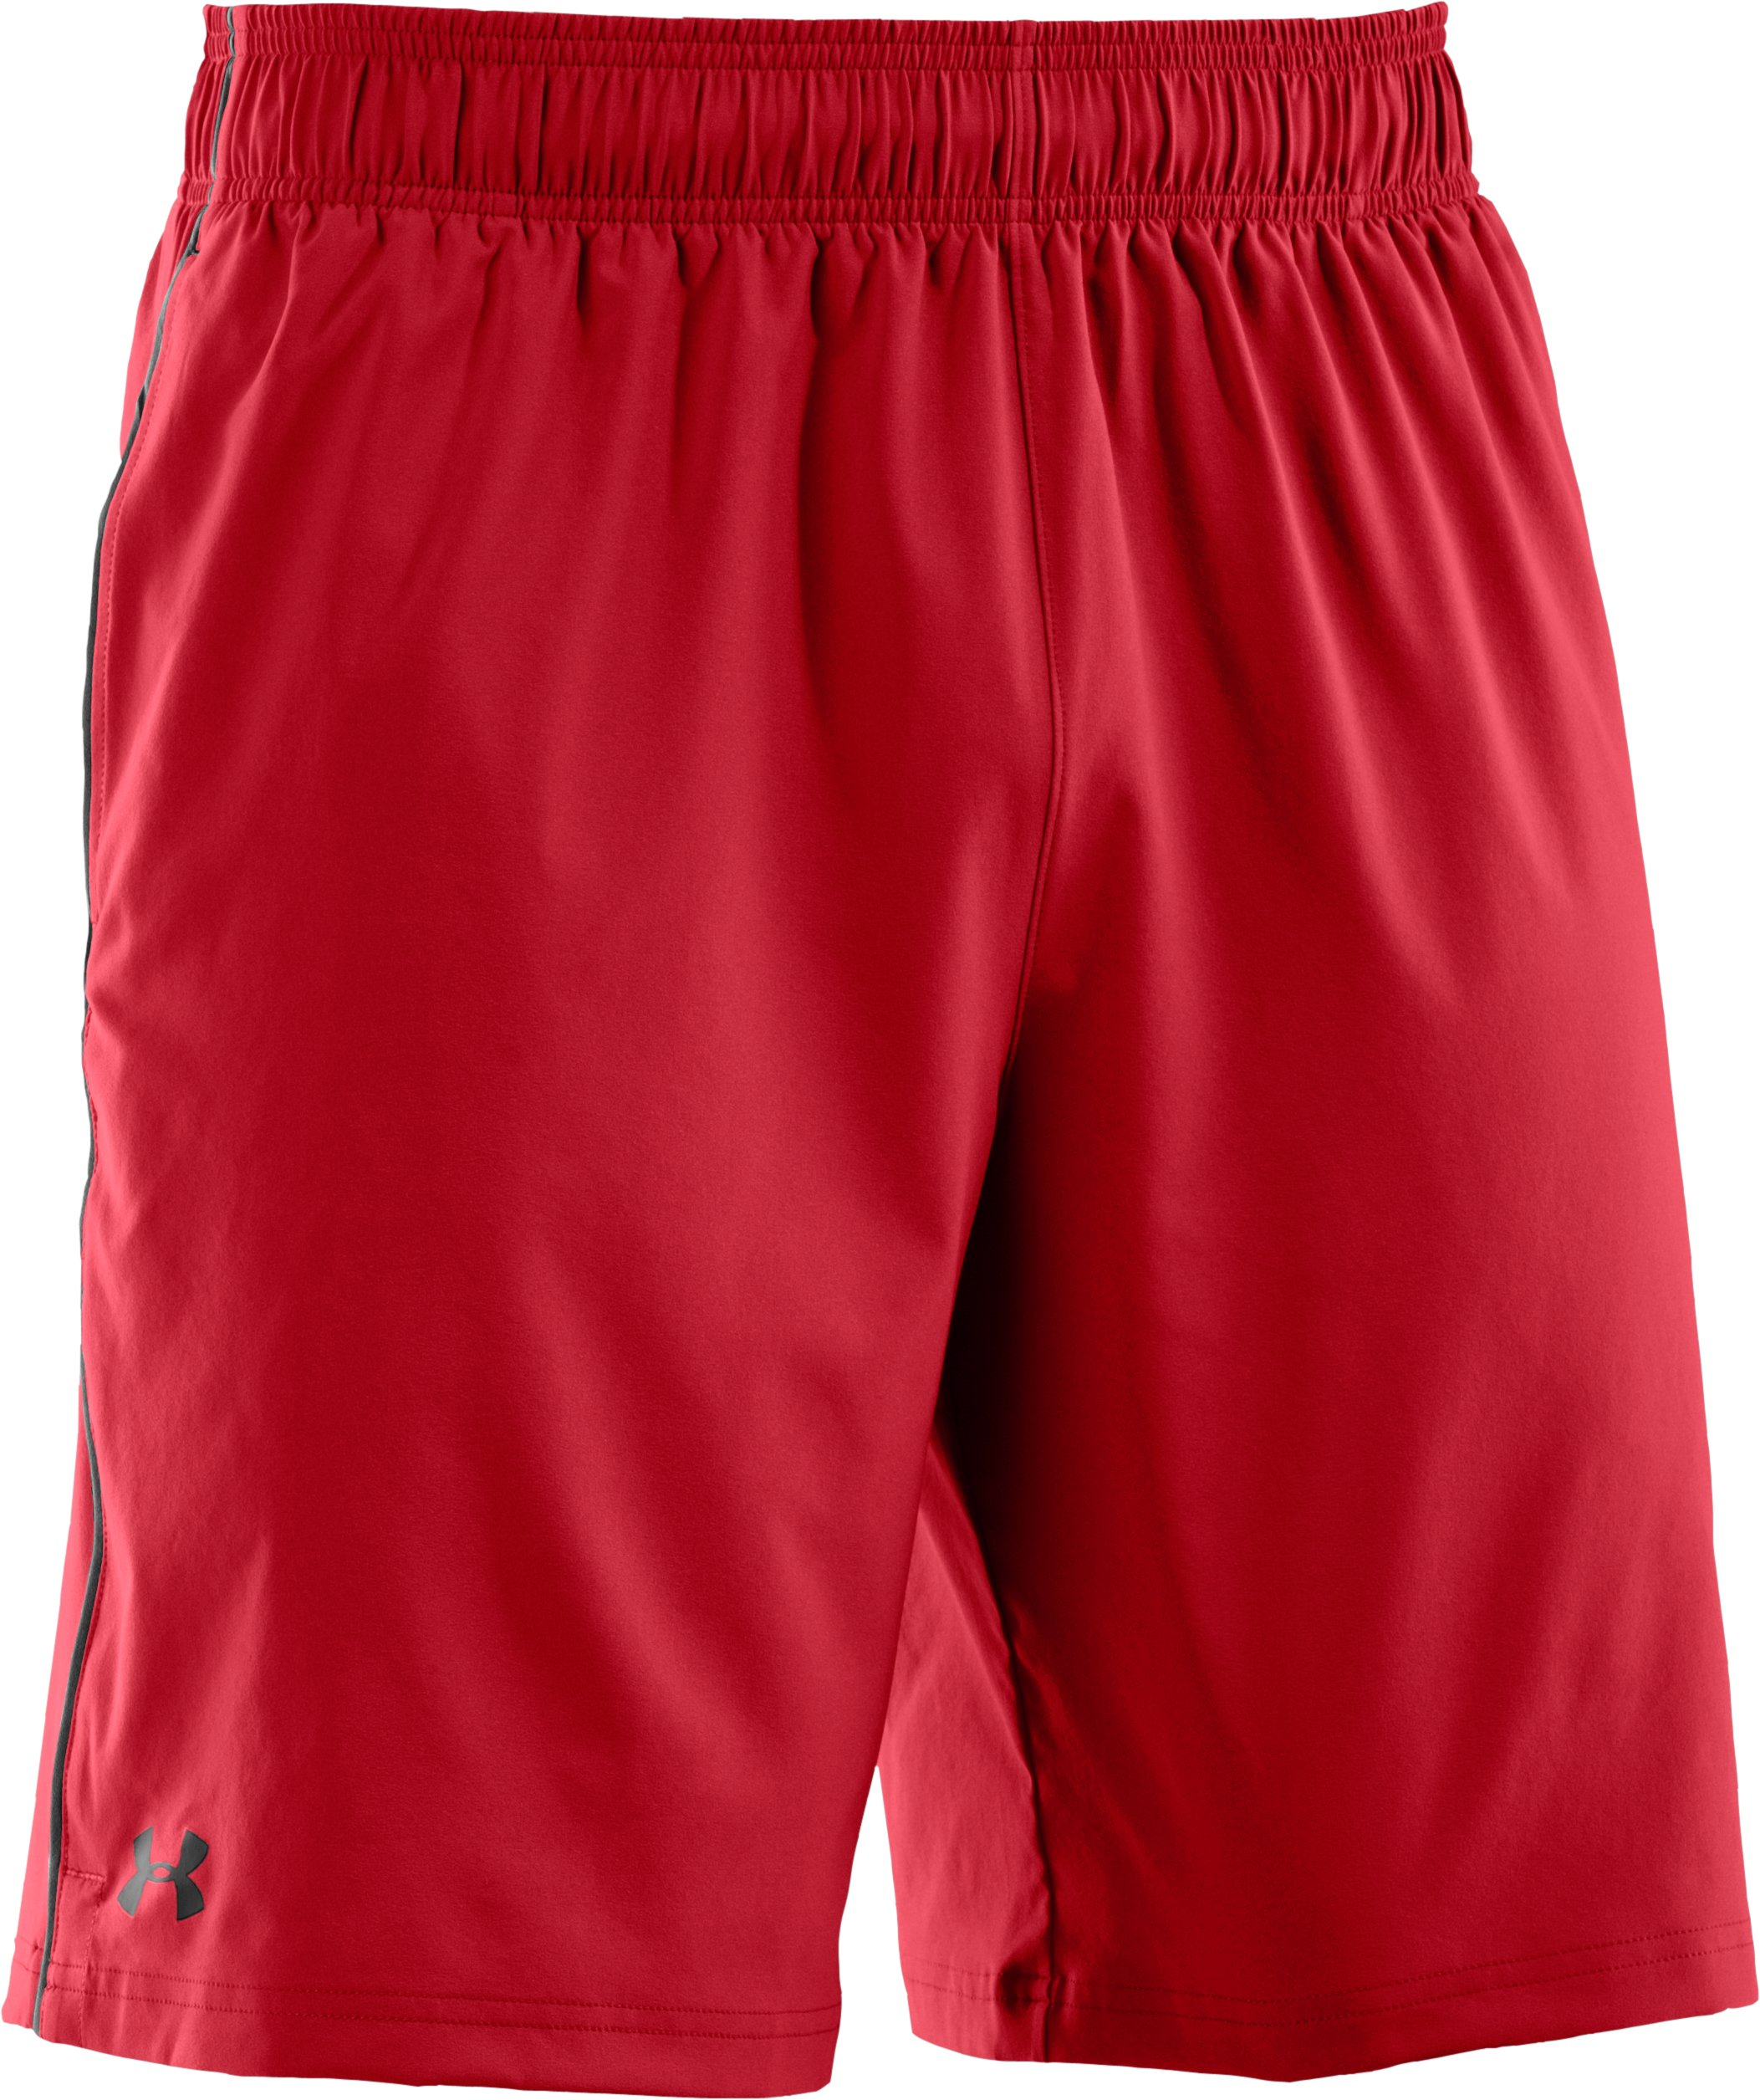 "Men's UA Mirage 10"" Shorts, Red, undefined"